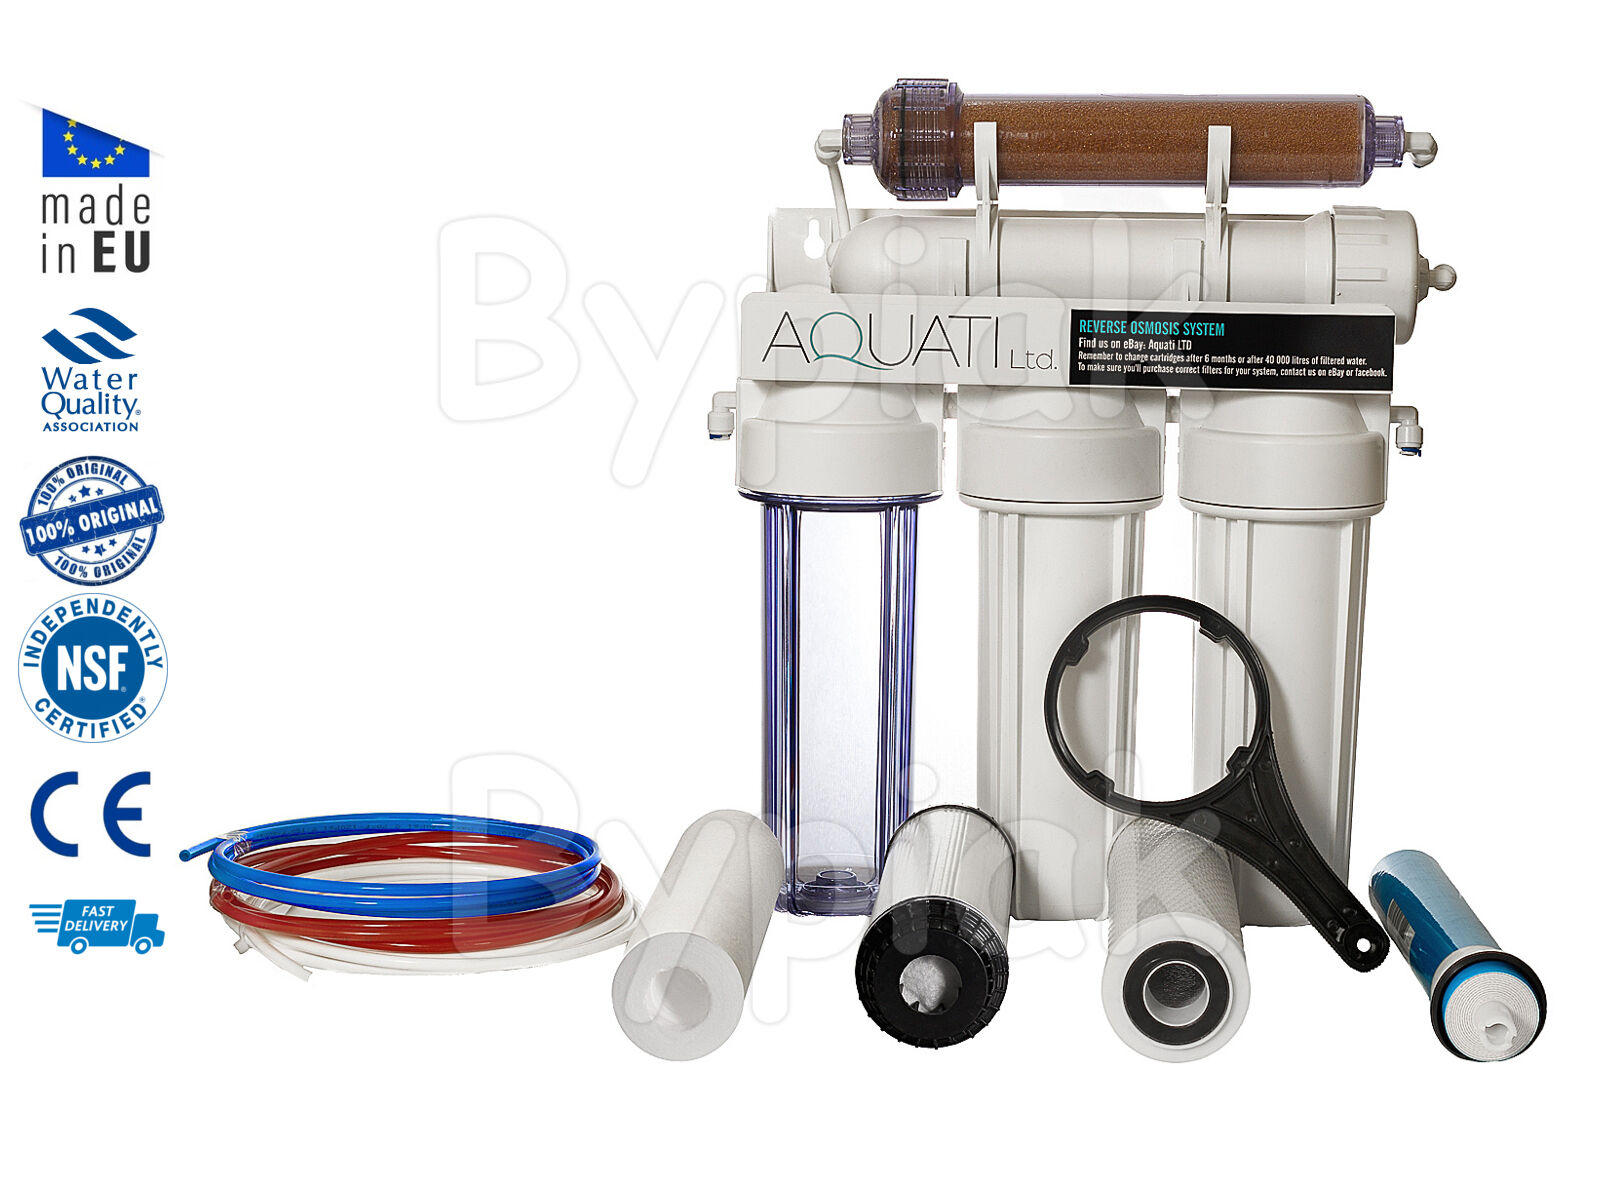 5 Stage RO with DI resin (Refillable) reverse osmosis filter 75GPD deionization